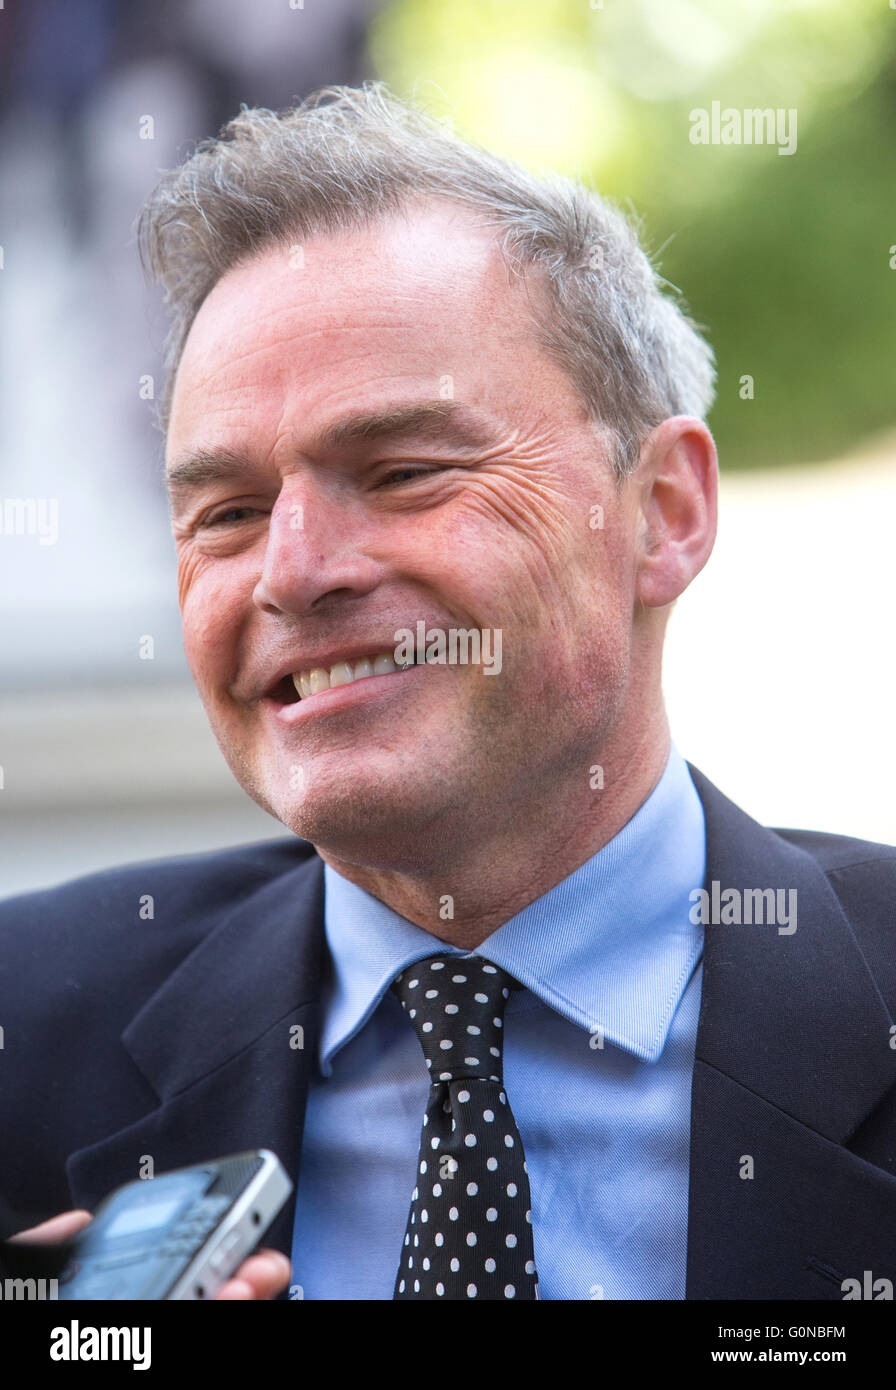 Peter Whittle,the UK Independence Party's mayoral candidate for the elections on May 5th - Stock Image